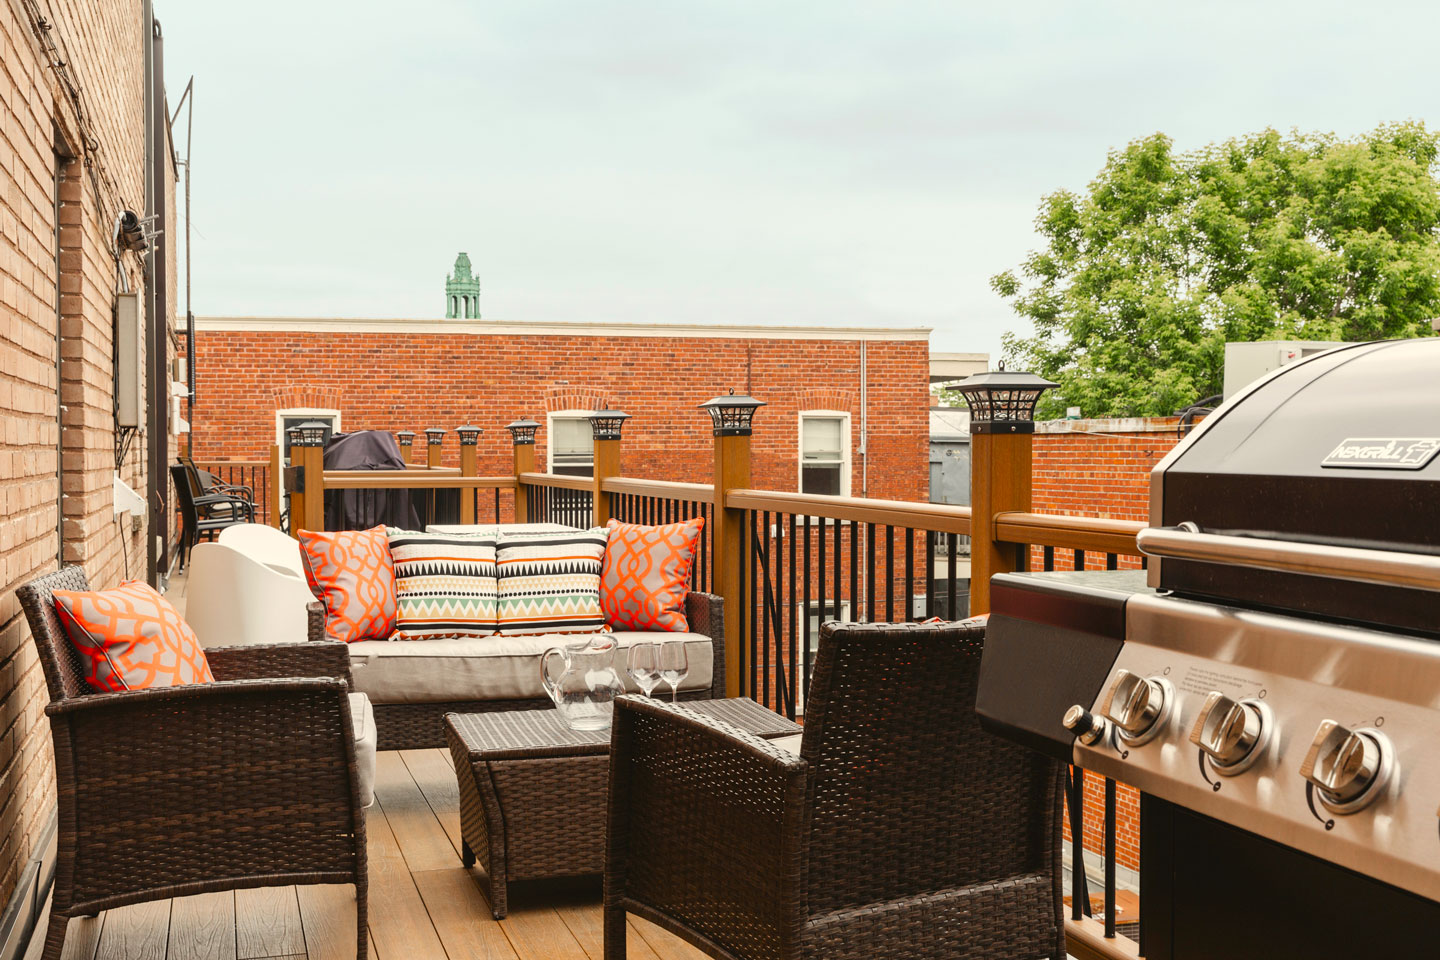 Golden kiss: shared patio with only one neighbor, furniture and BBQ only yours to use